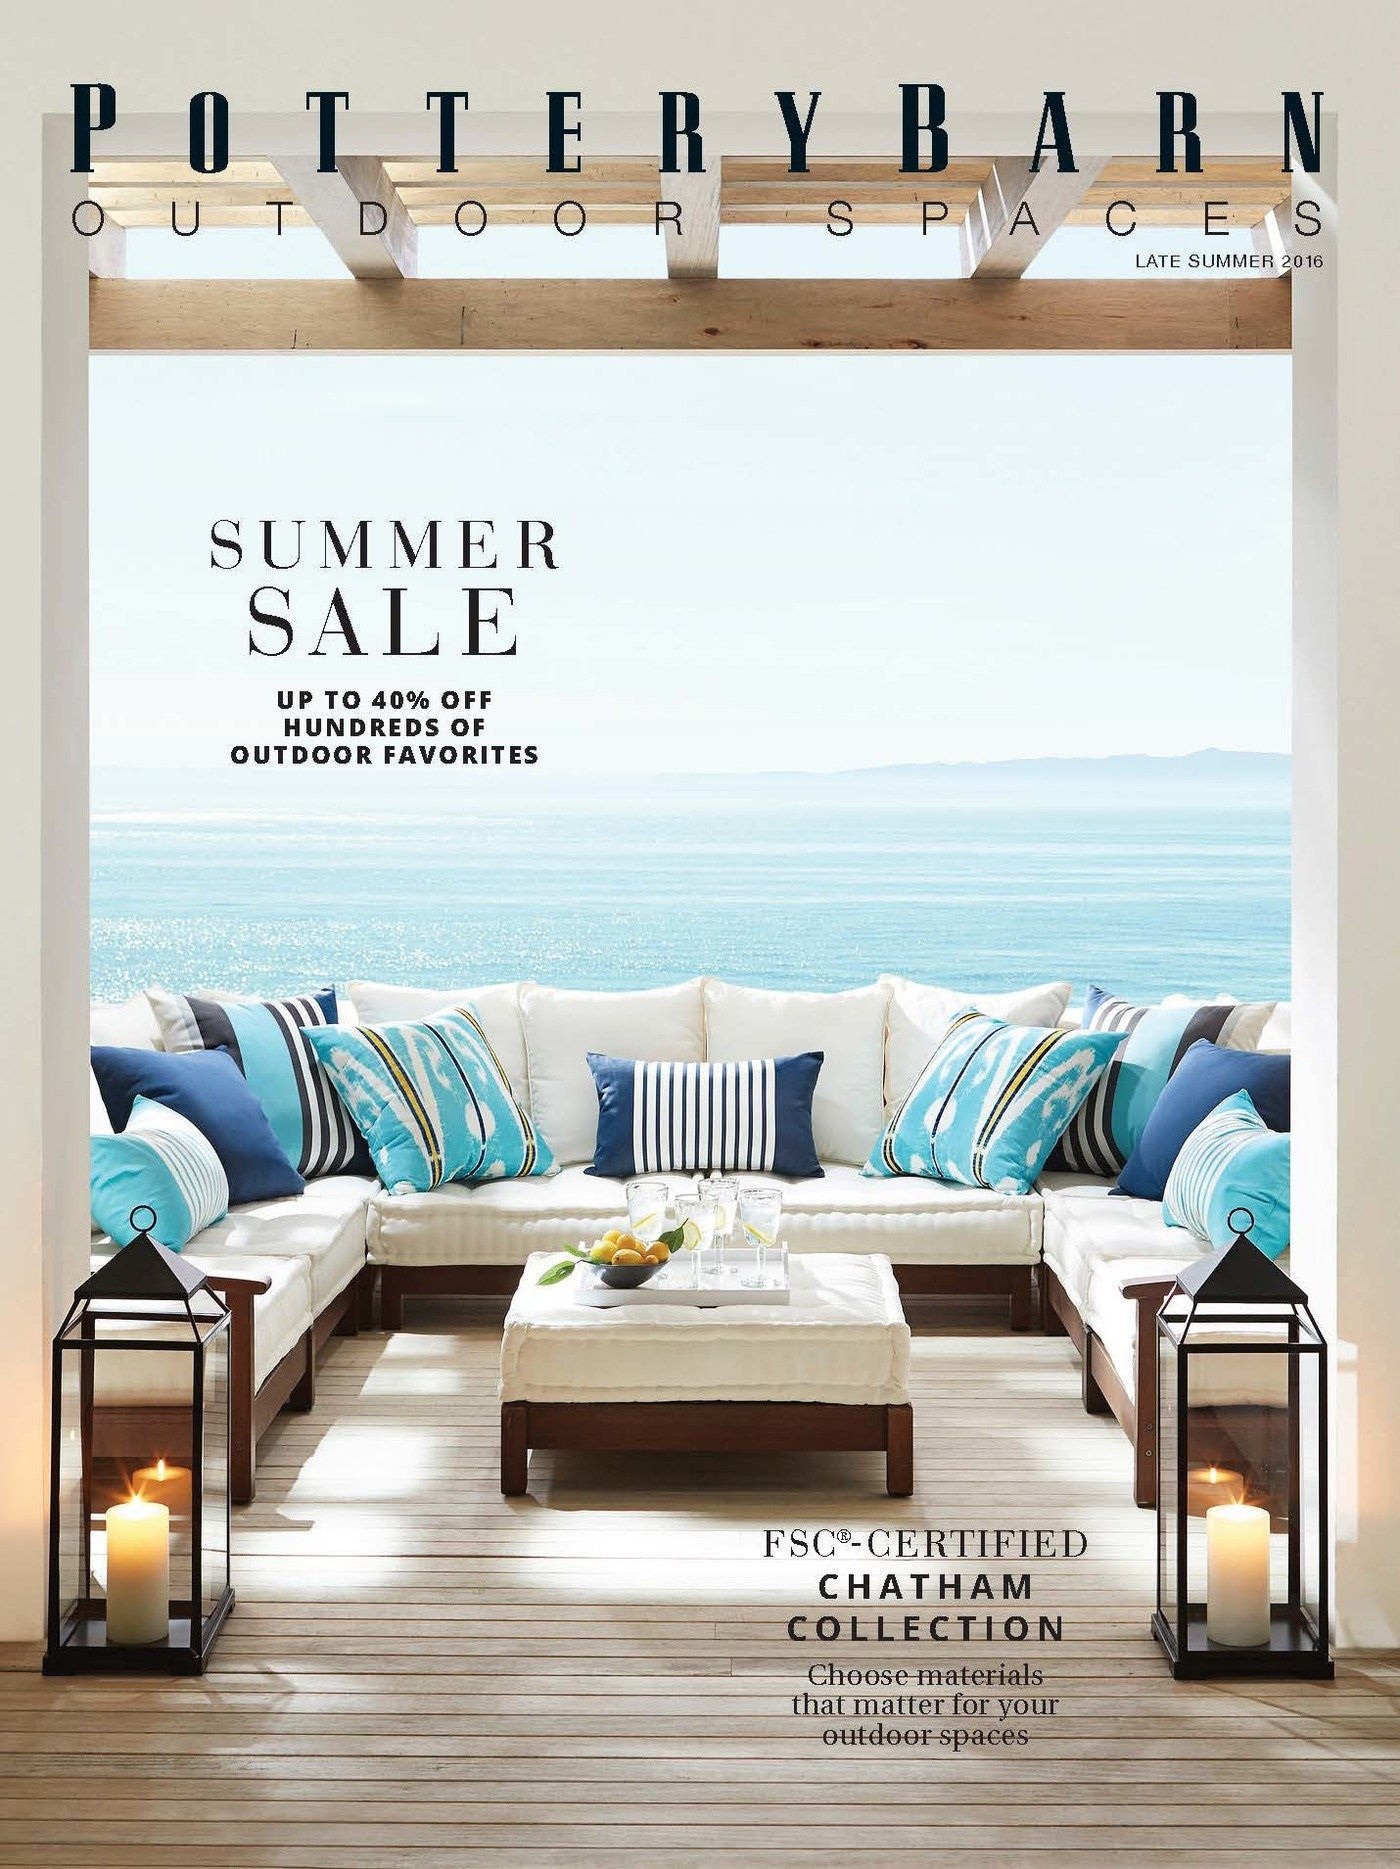 Pottery Barn – Outdoor Spaces by Dirk Schryver at Coroflot.com